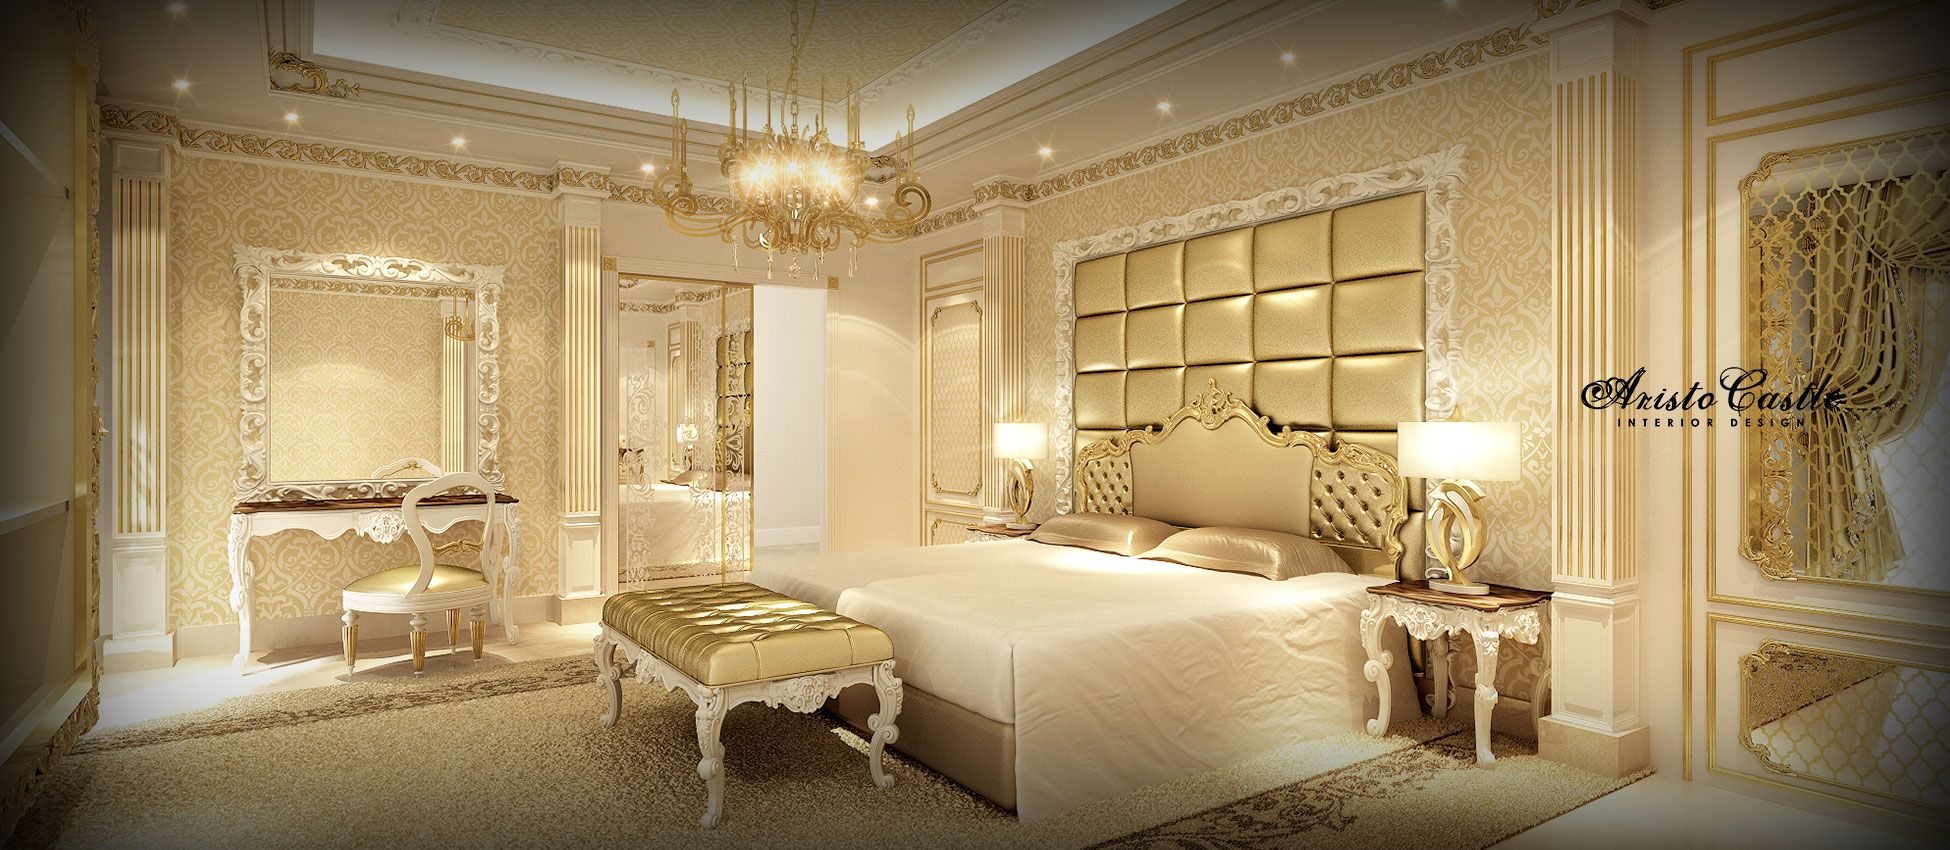 Dubai luxury interior design luxury master bedroom for Luxurious bedroom interior design ideas